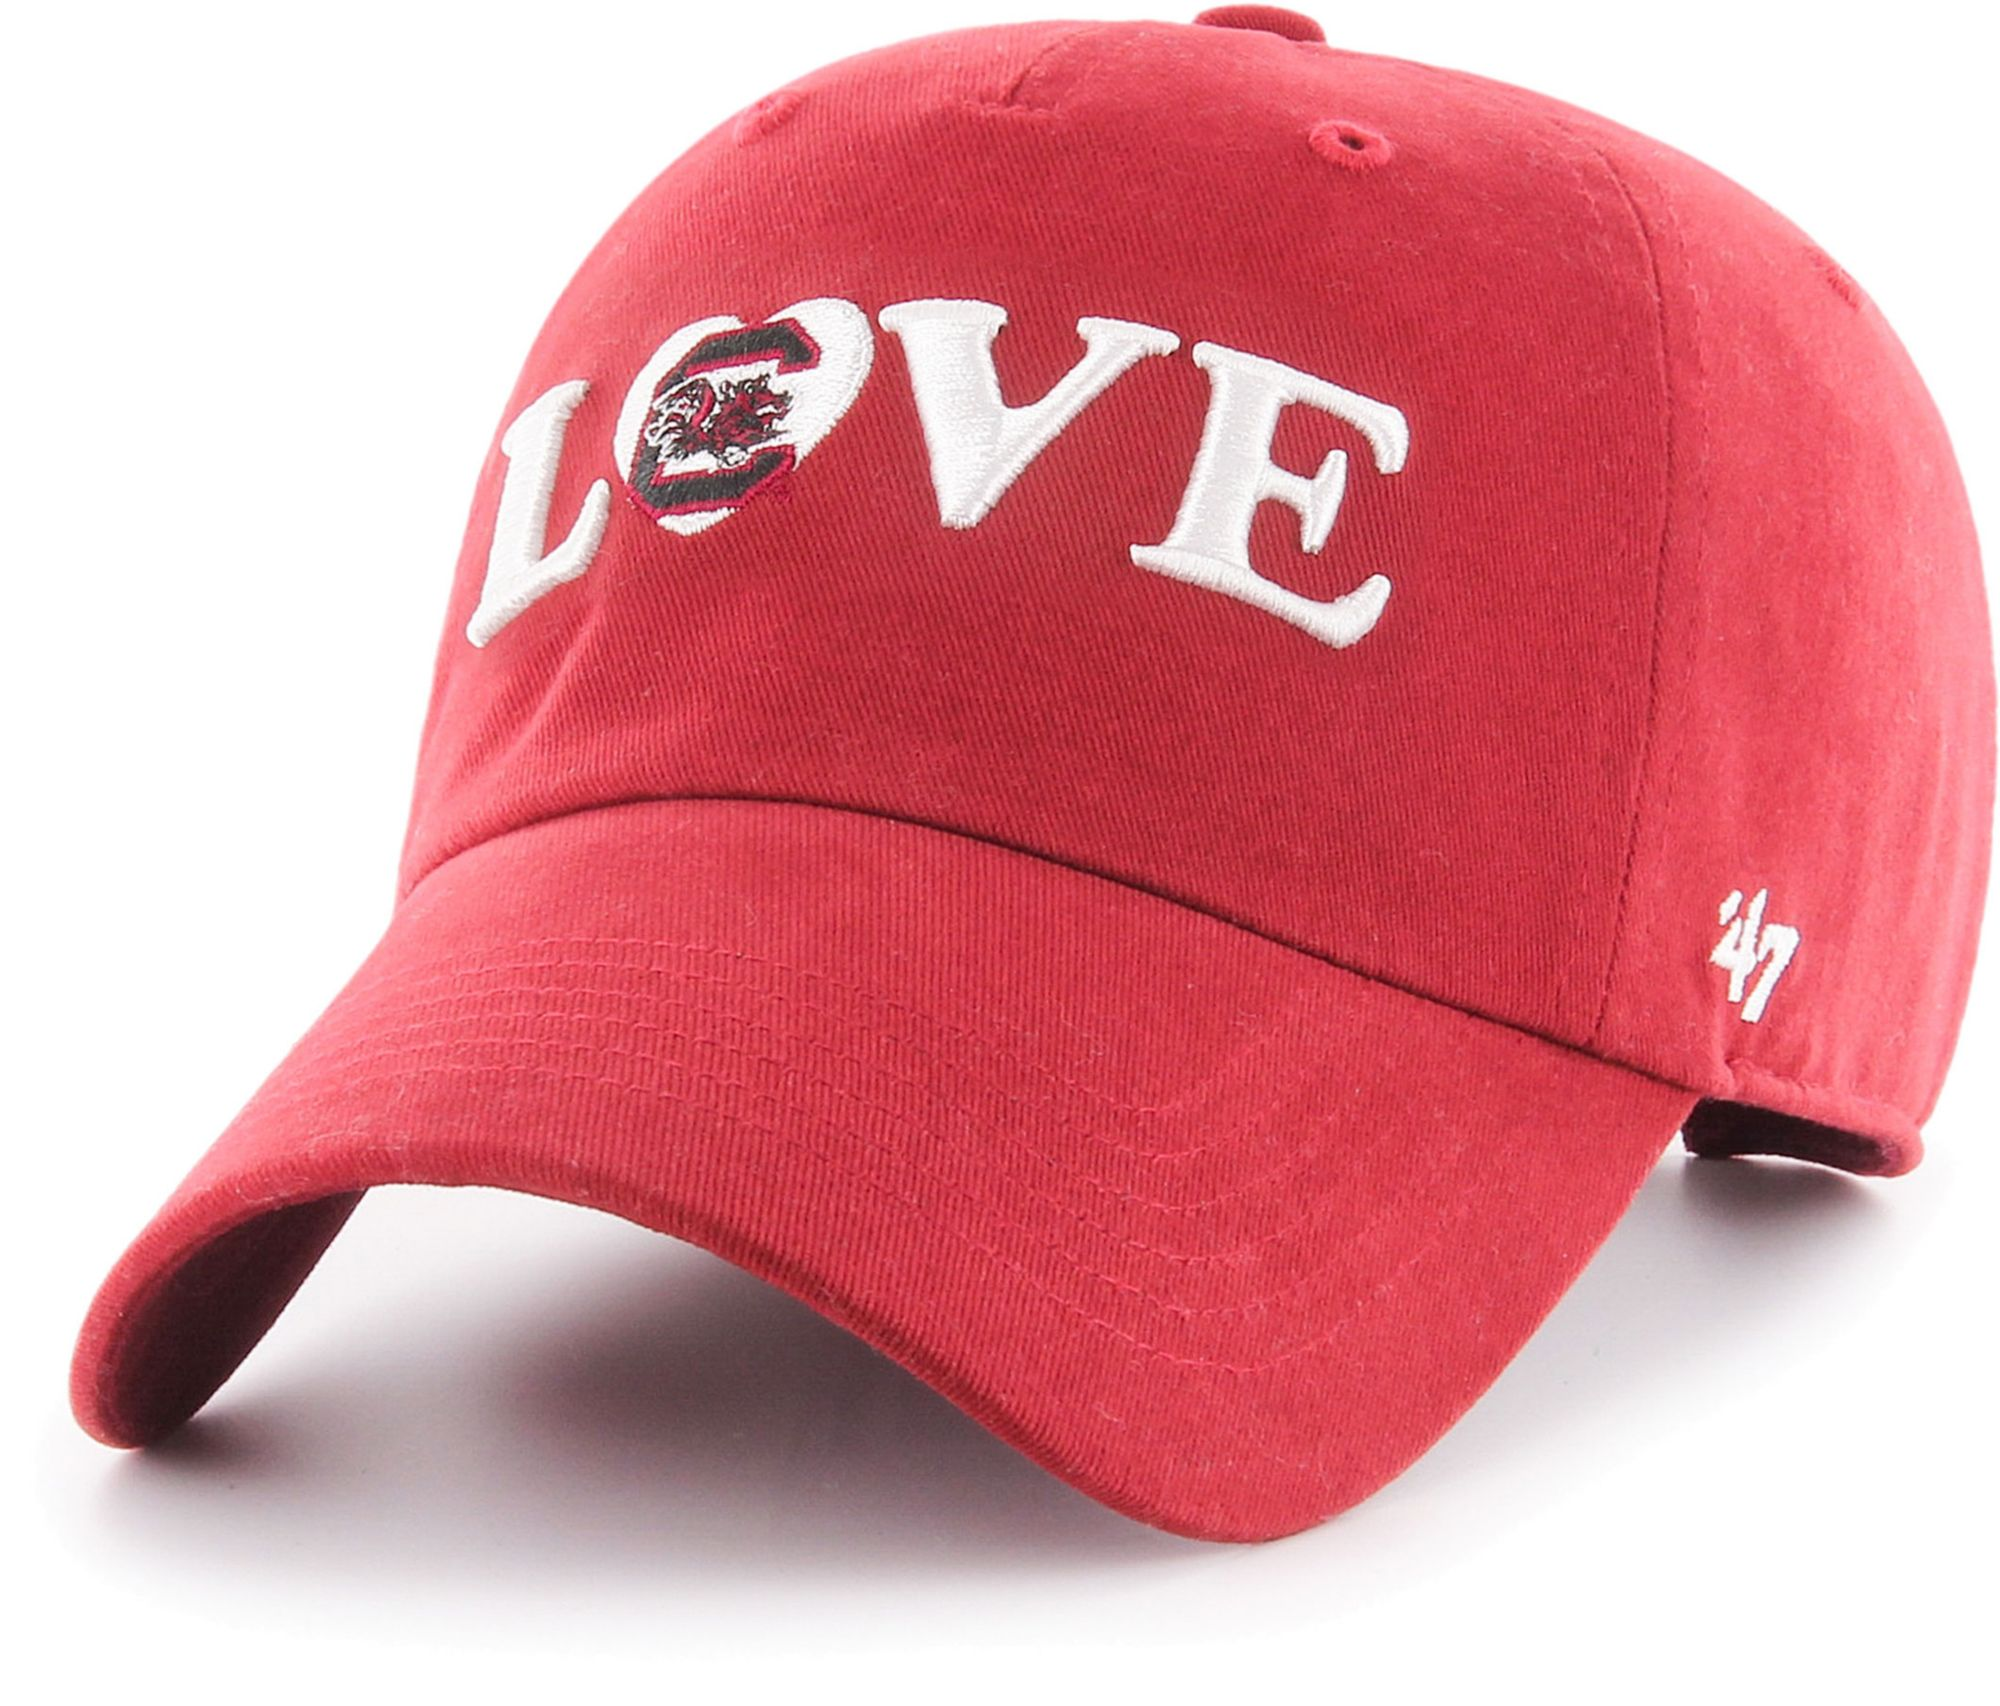 '47 Women's UTEP Miners Blaze Orange Love Script Clean Up Adjustable Hat, Size: One size thumbnail